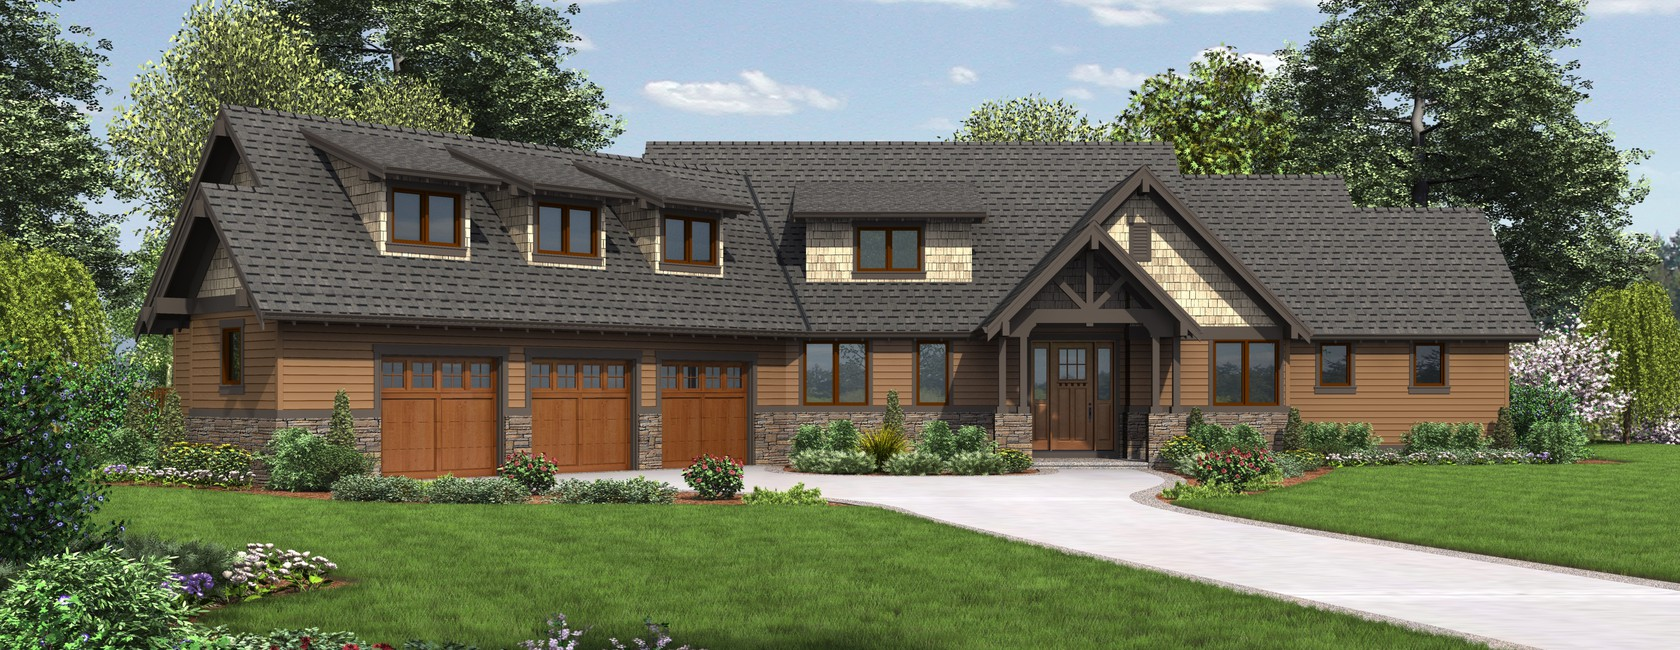 The abbeywood craftsman home plan allows for work rest Rest house plan